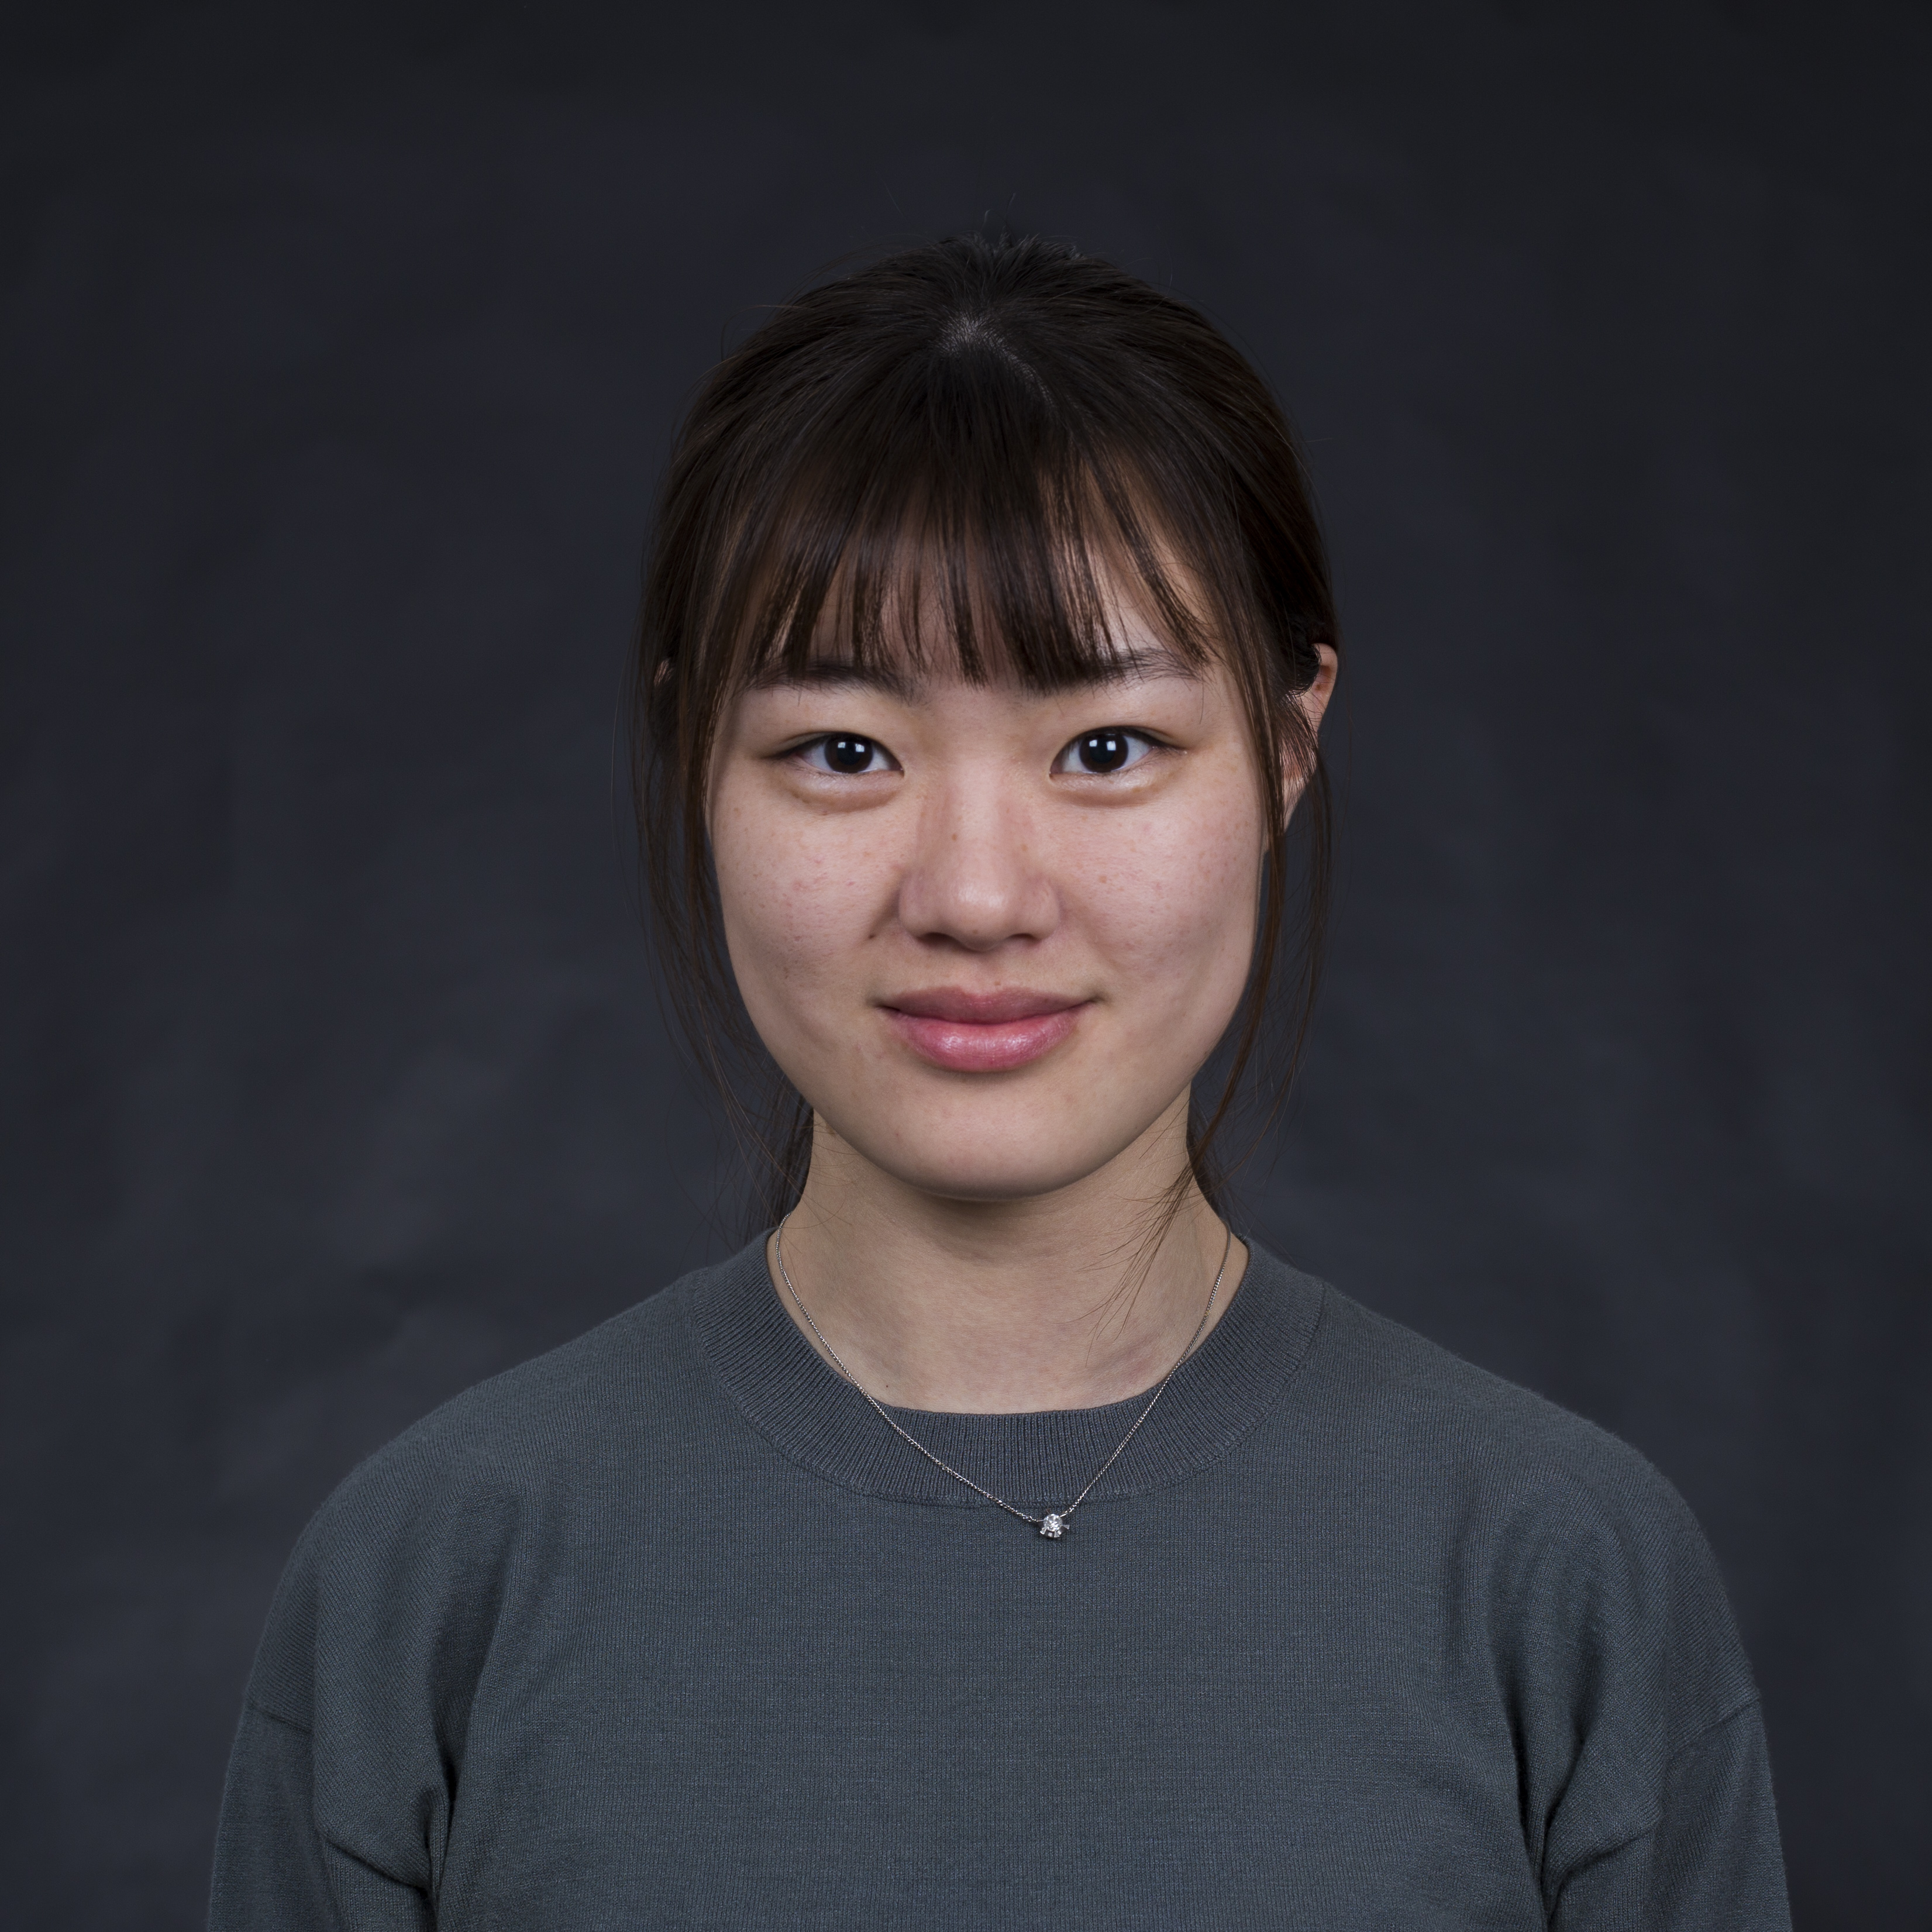 Portrait photograph of international student ambassador Yumeng Li.